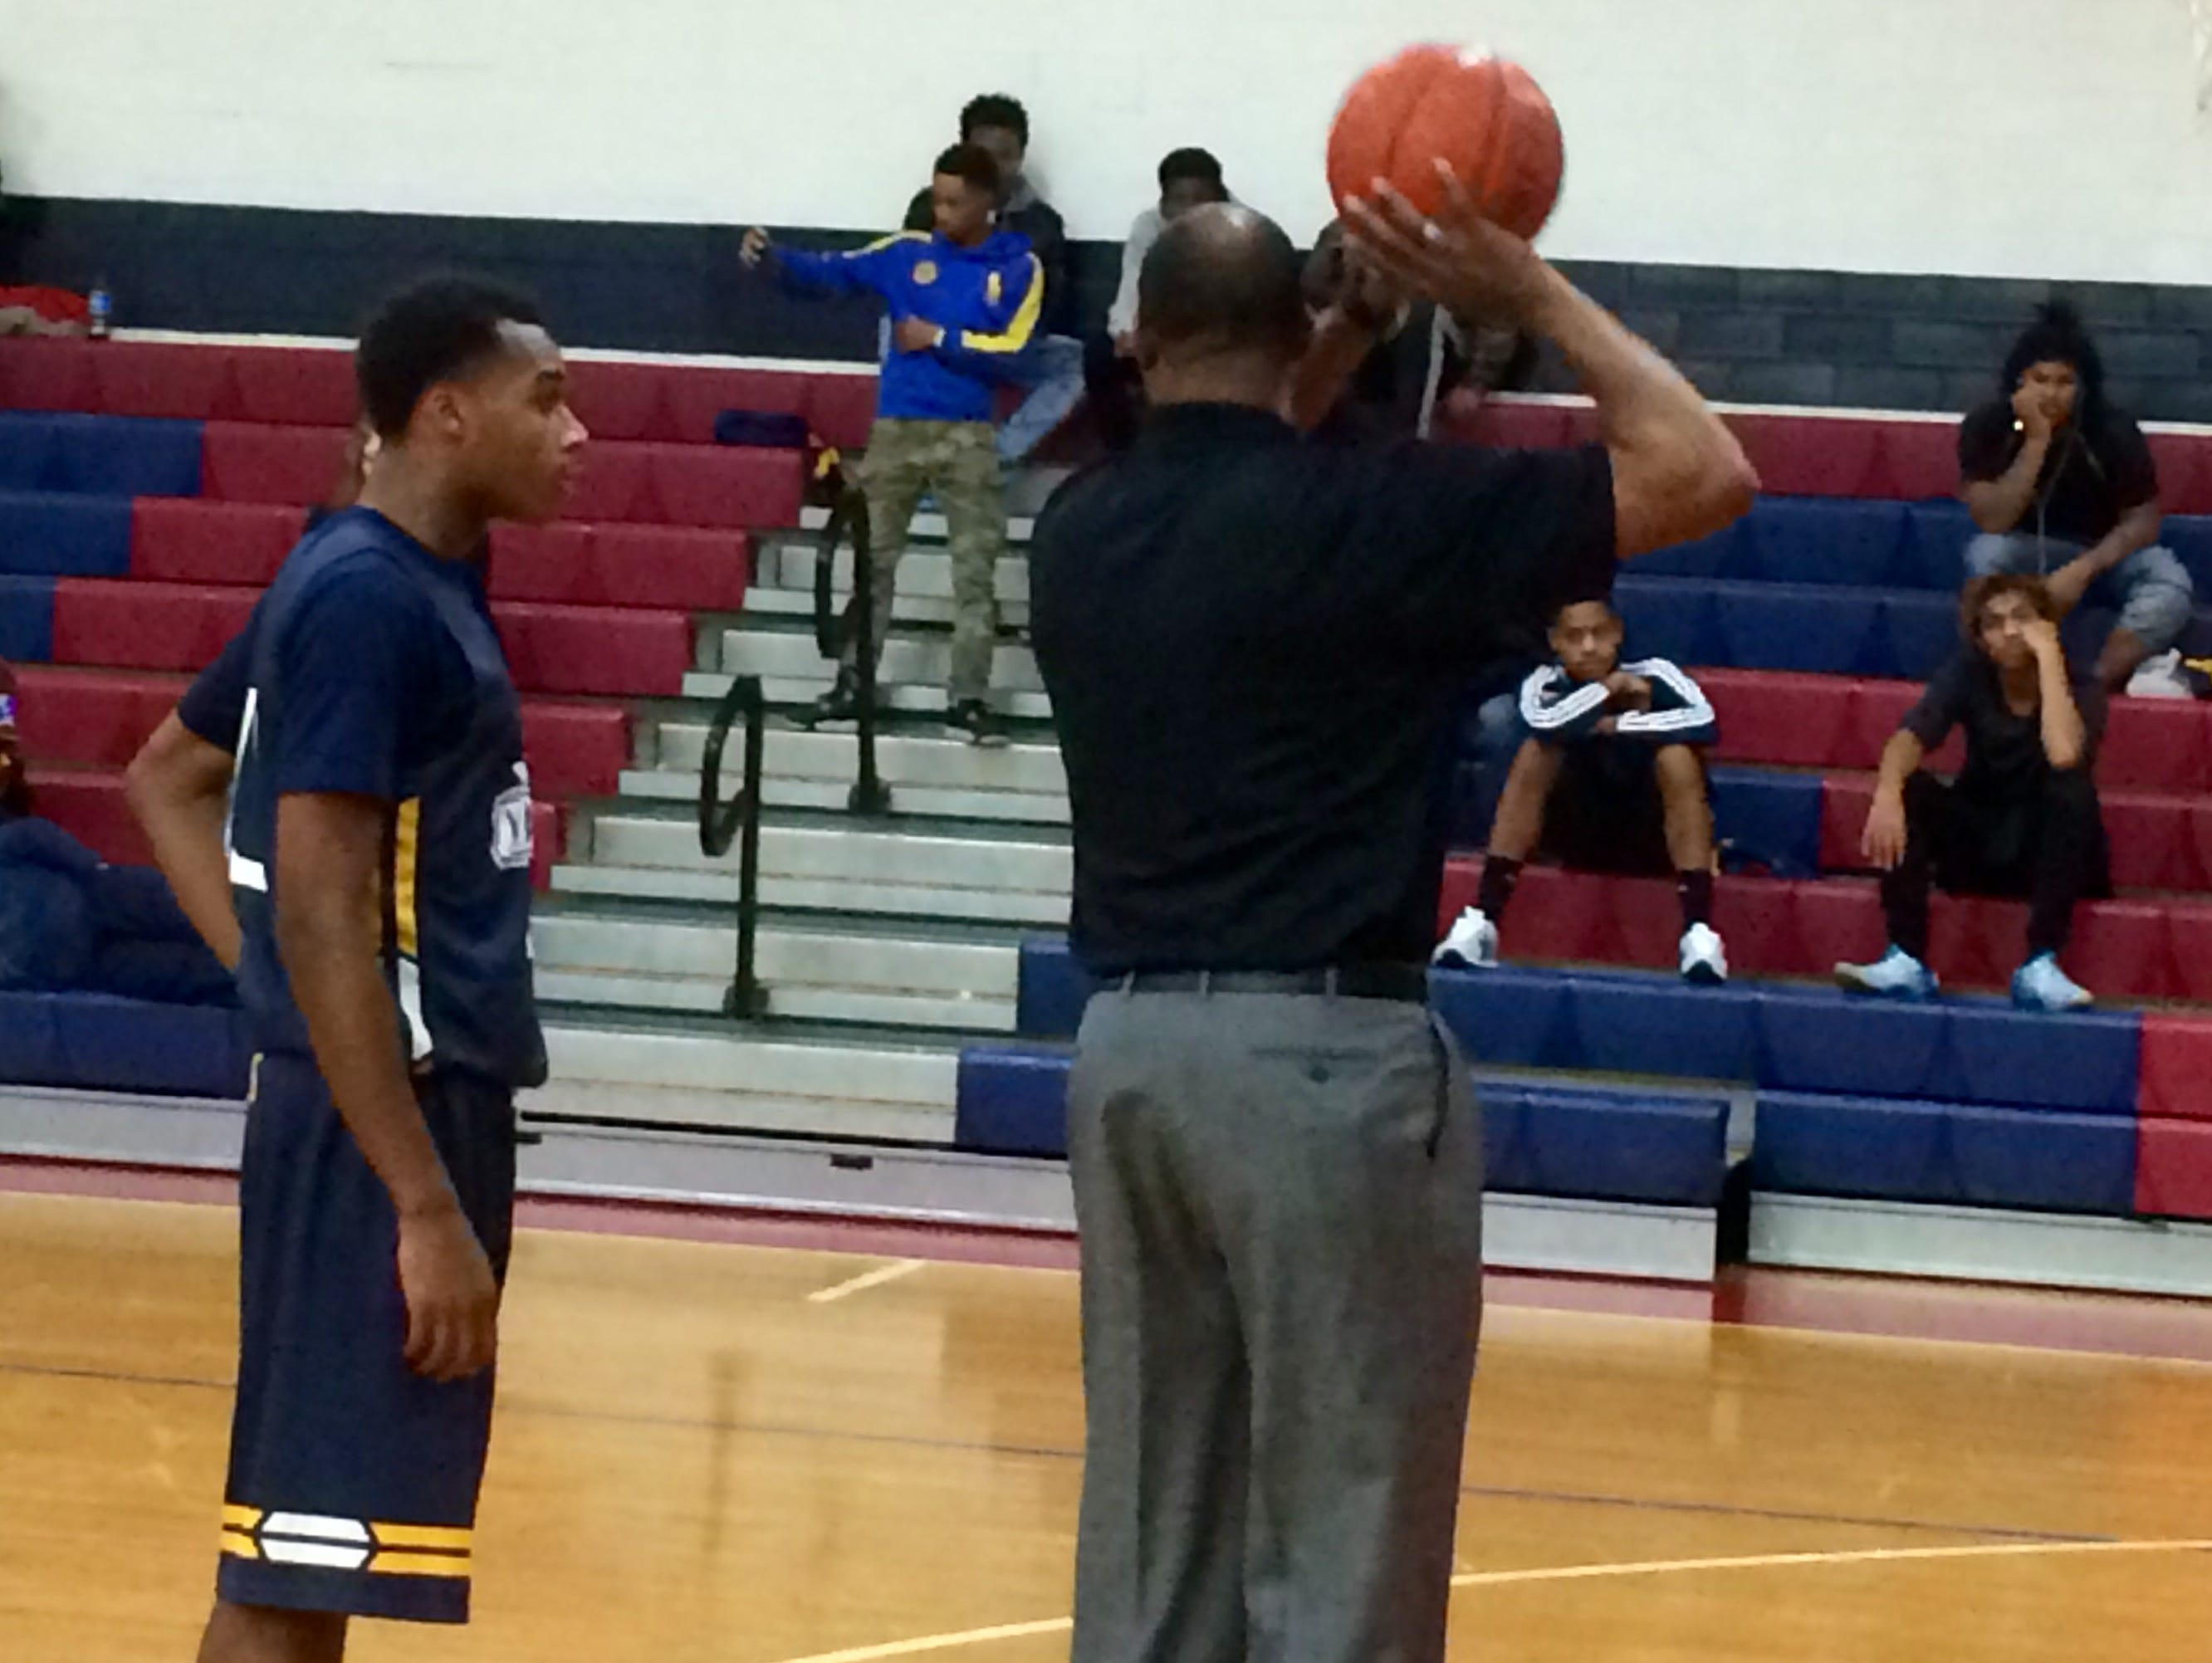 Coach Derrick Fooks offers some instruction to Leander Roberts during halftime.